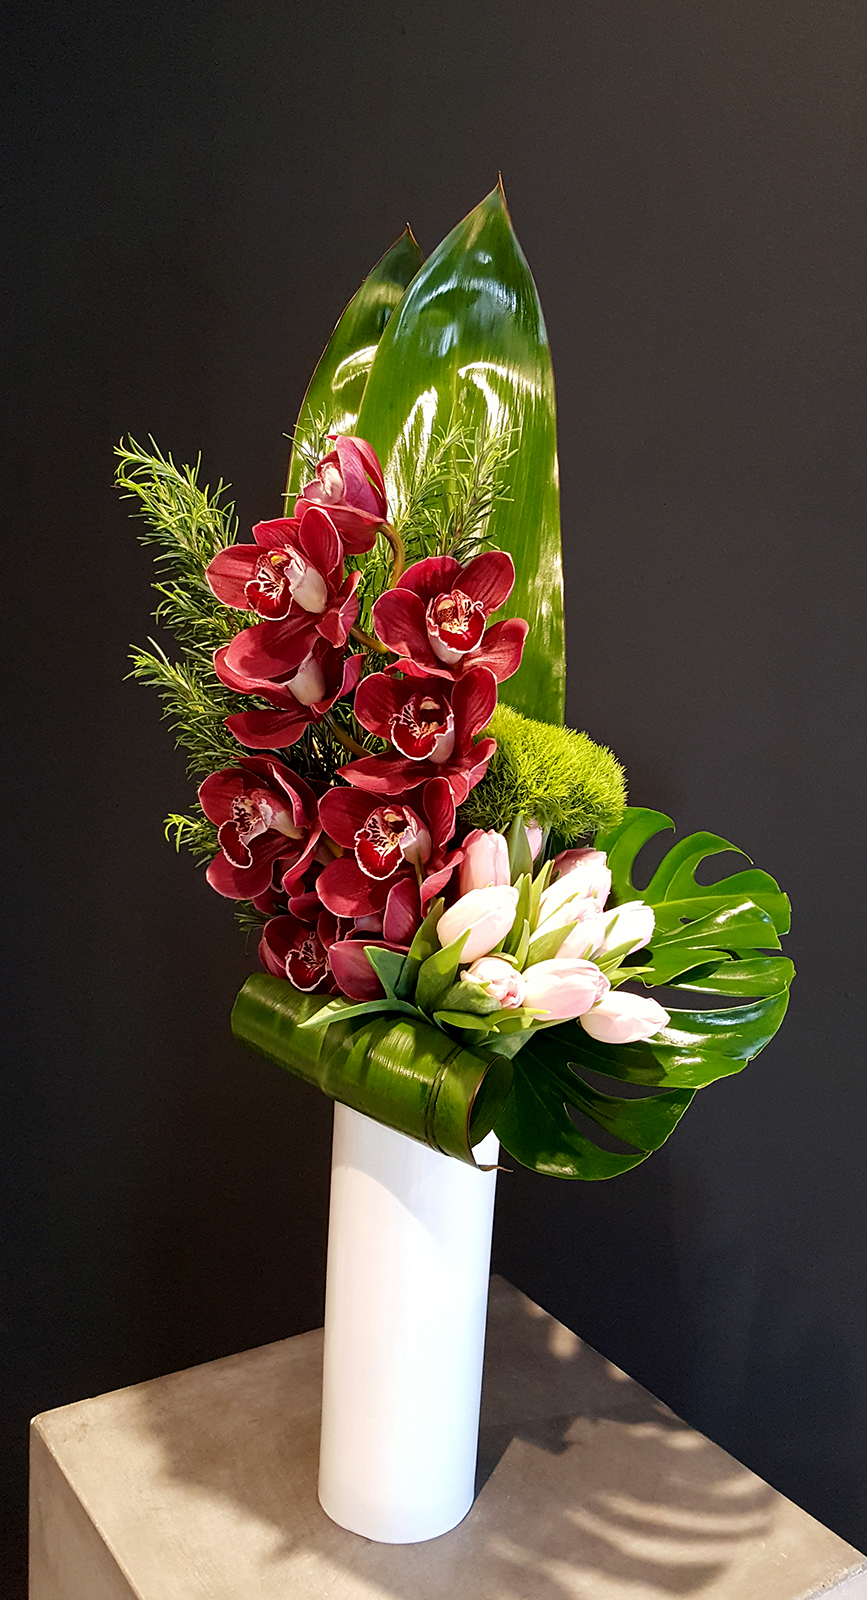 Red and white floral arrangement for Bouquets & Beyond